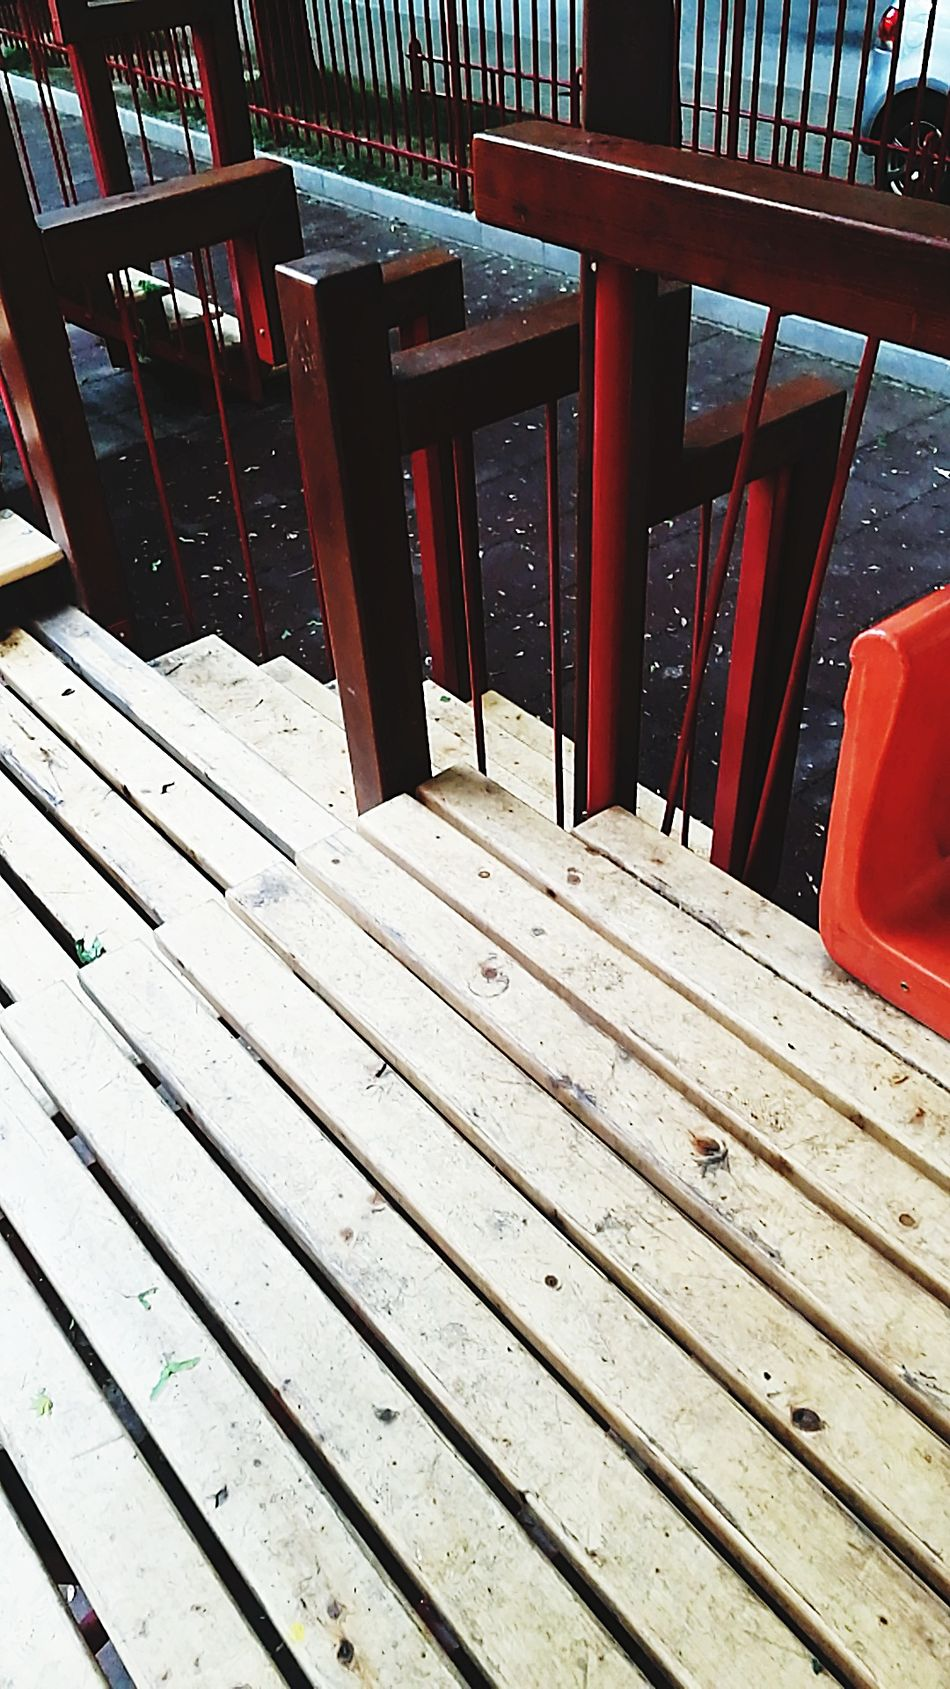 Steps Wood - Material Red